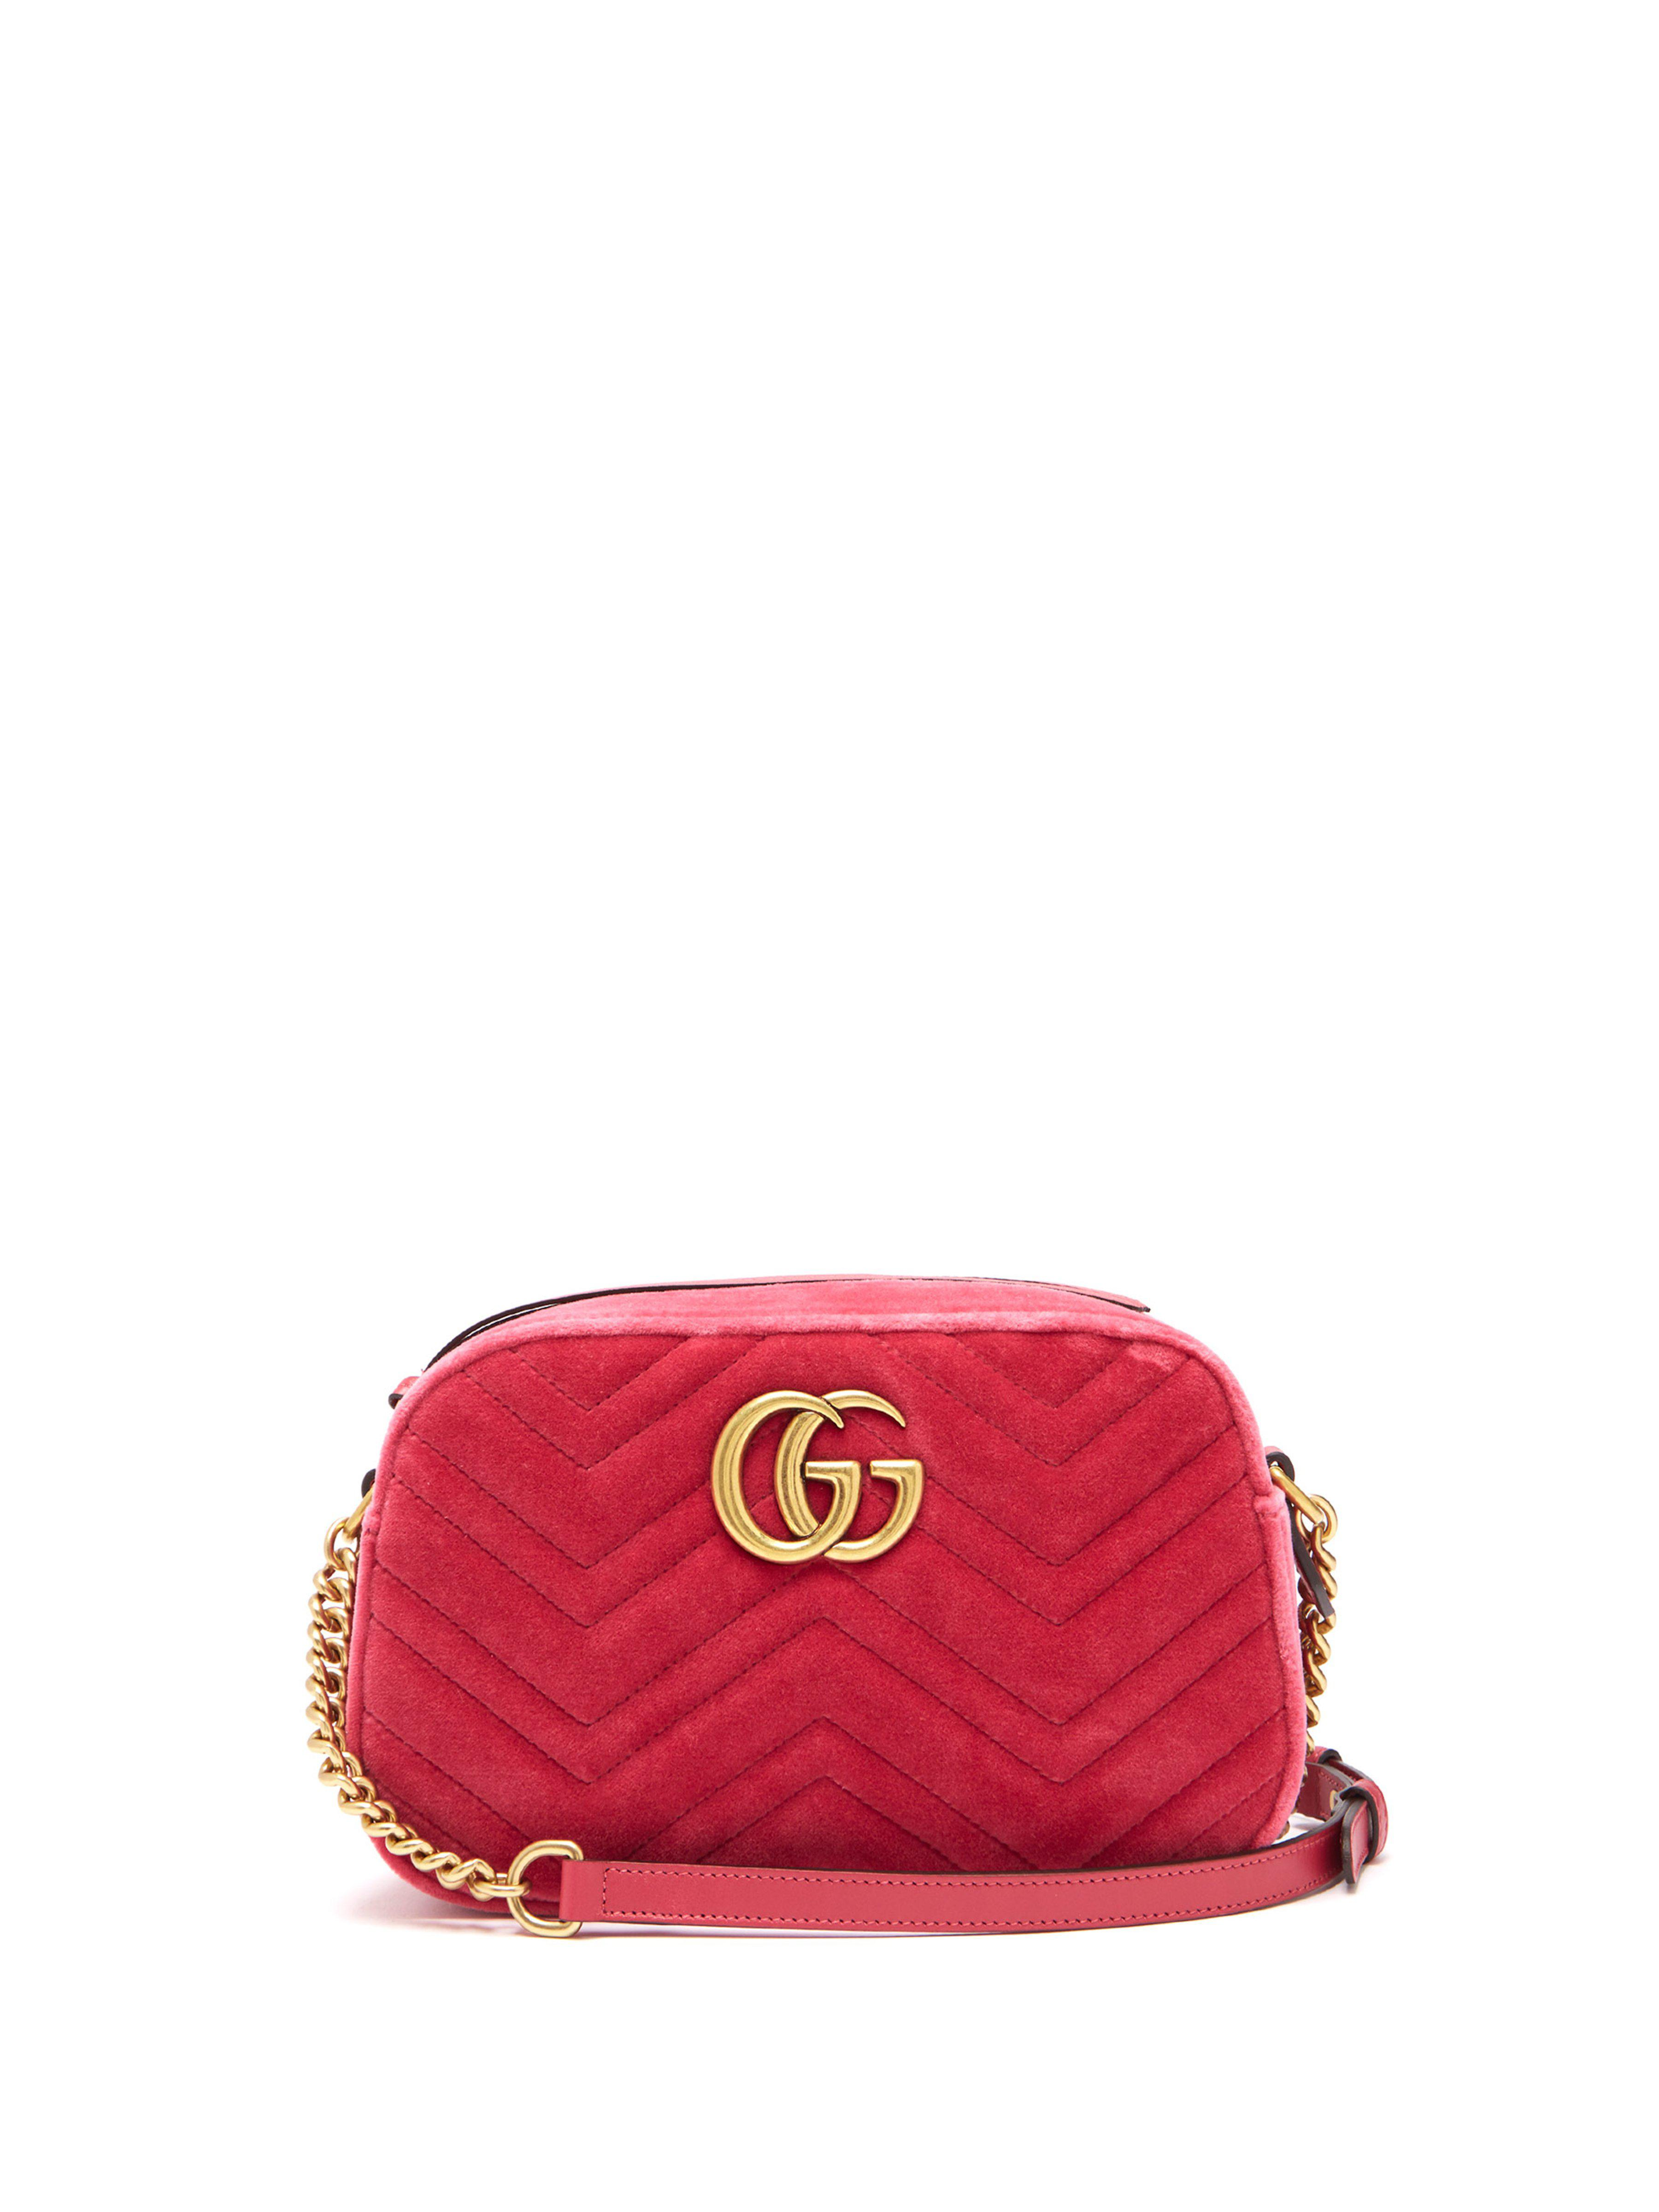 624421b37d14f Gucci Gg Marmont Quilted Velvet Cross Body Bag in Pink - Lyst